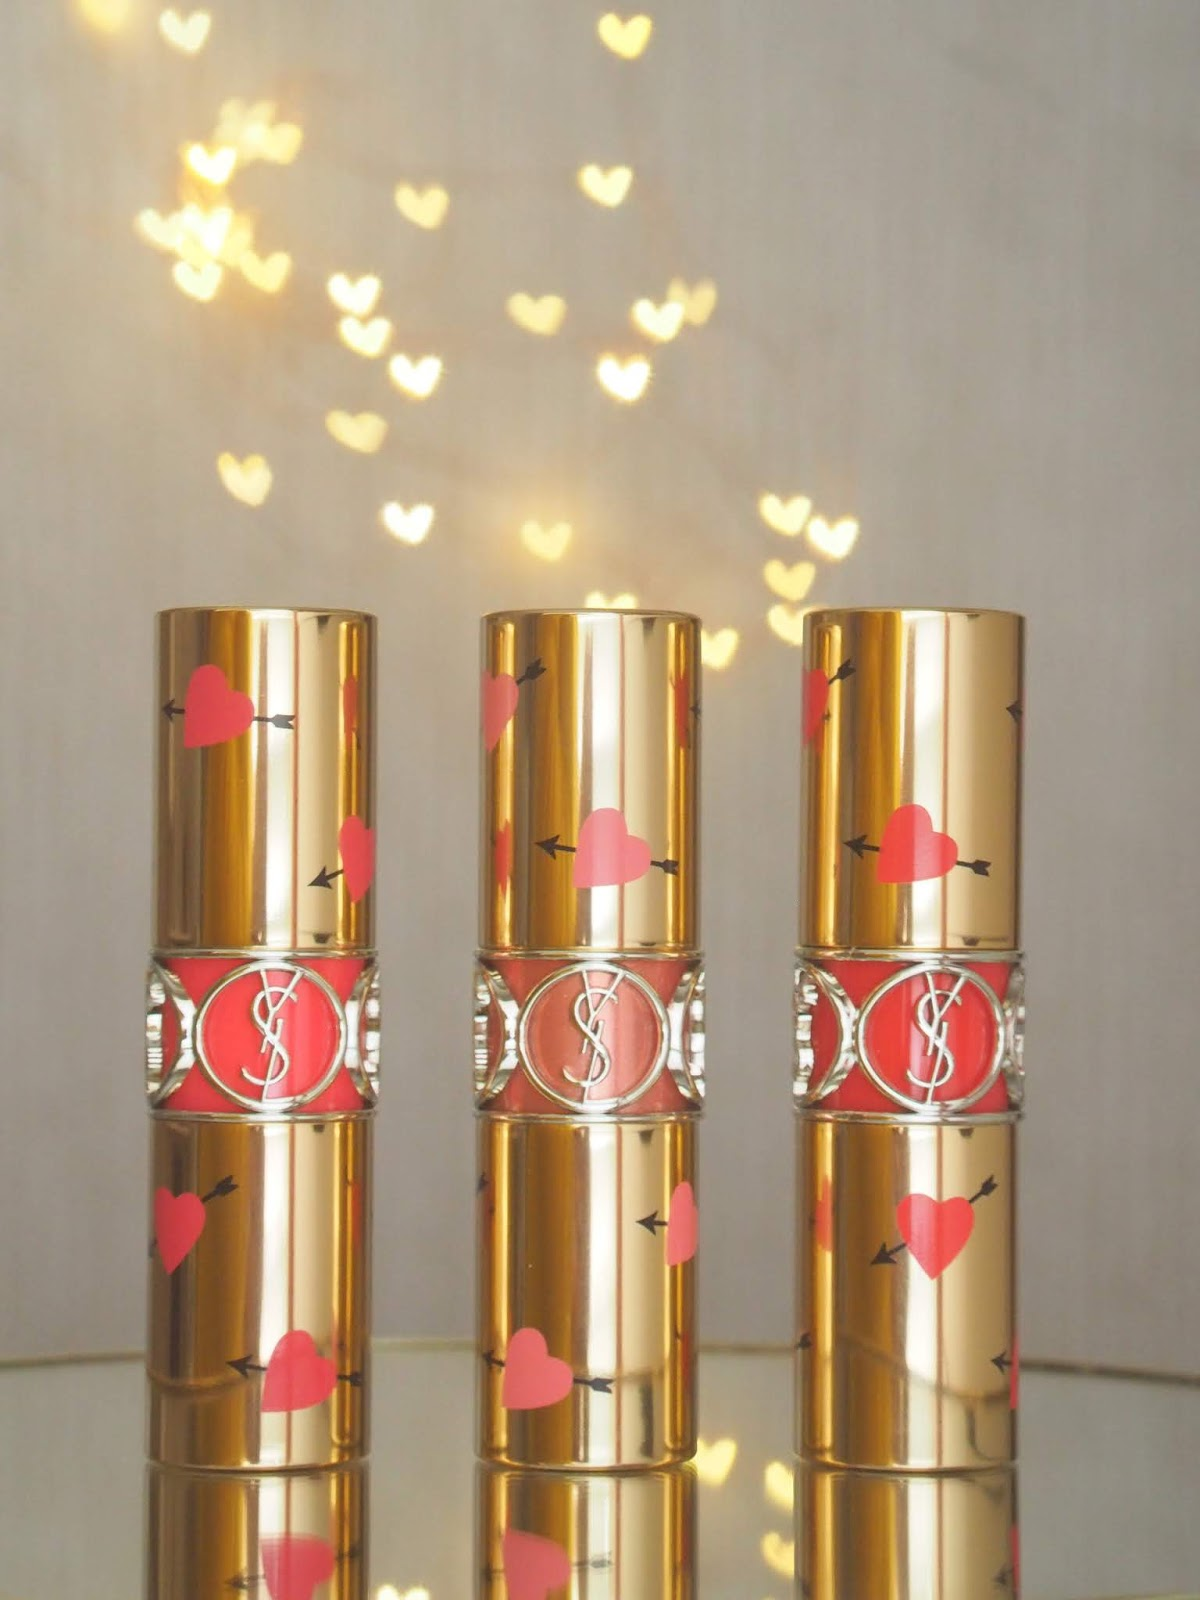 YSL Rouge Volupte Shine Heart & Arrows Collectors Edition review, photos, swatches!